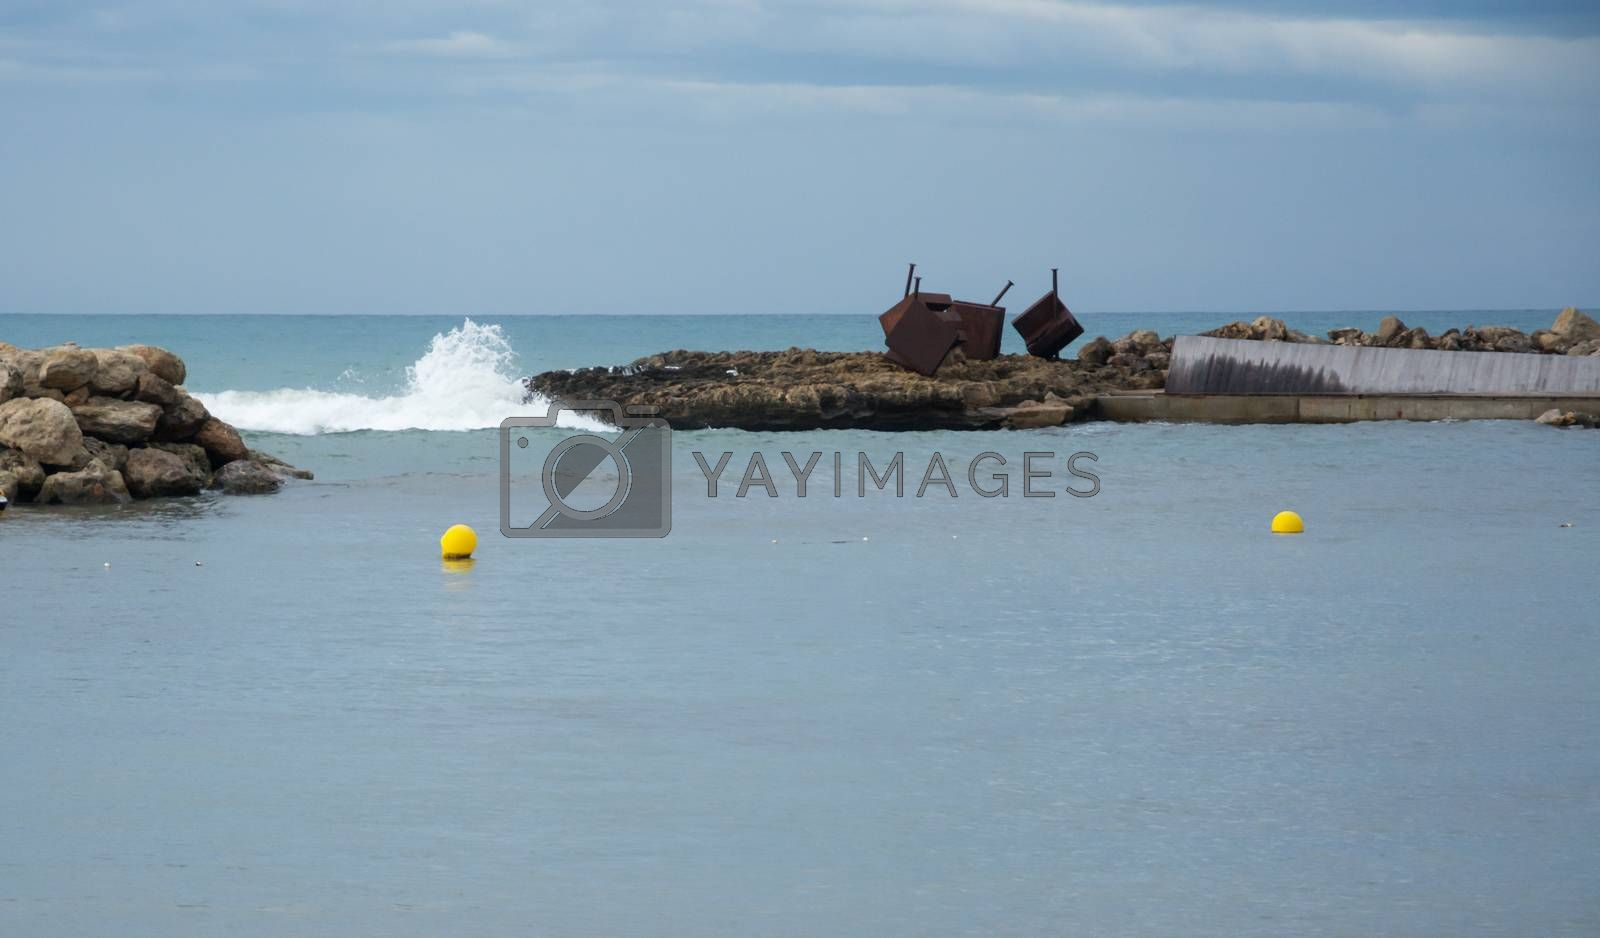 Royalty free image of Two yellow buoys white wave and horizon by ArtesiaWells